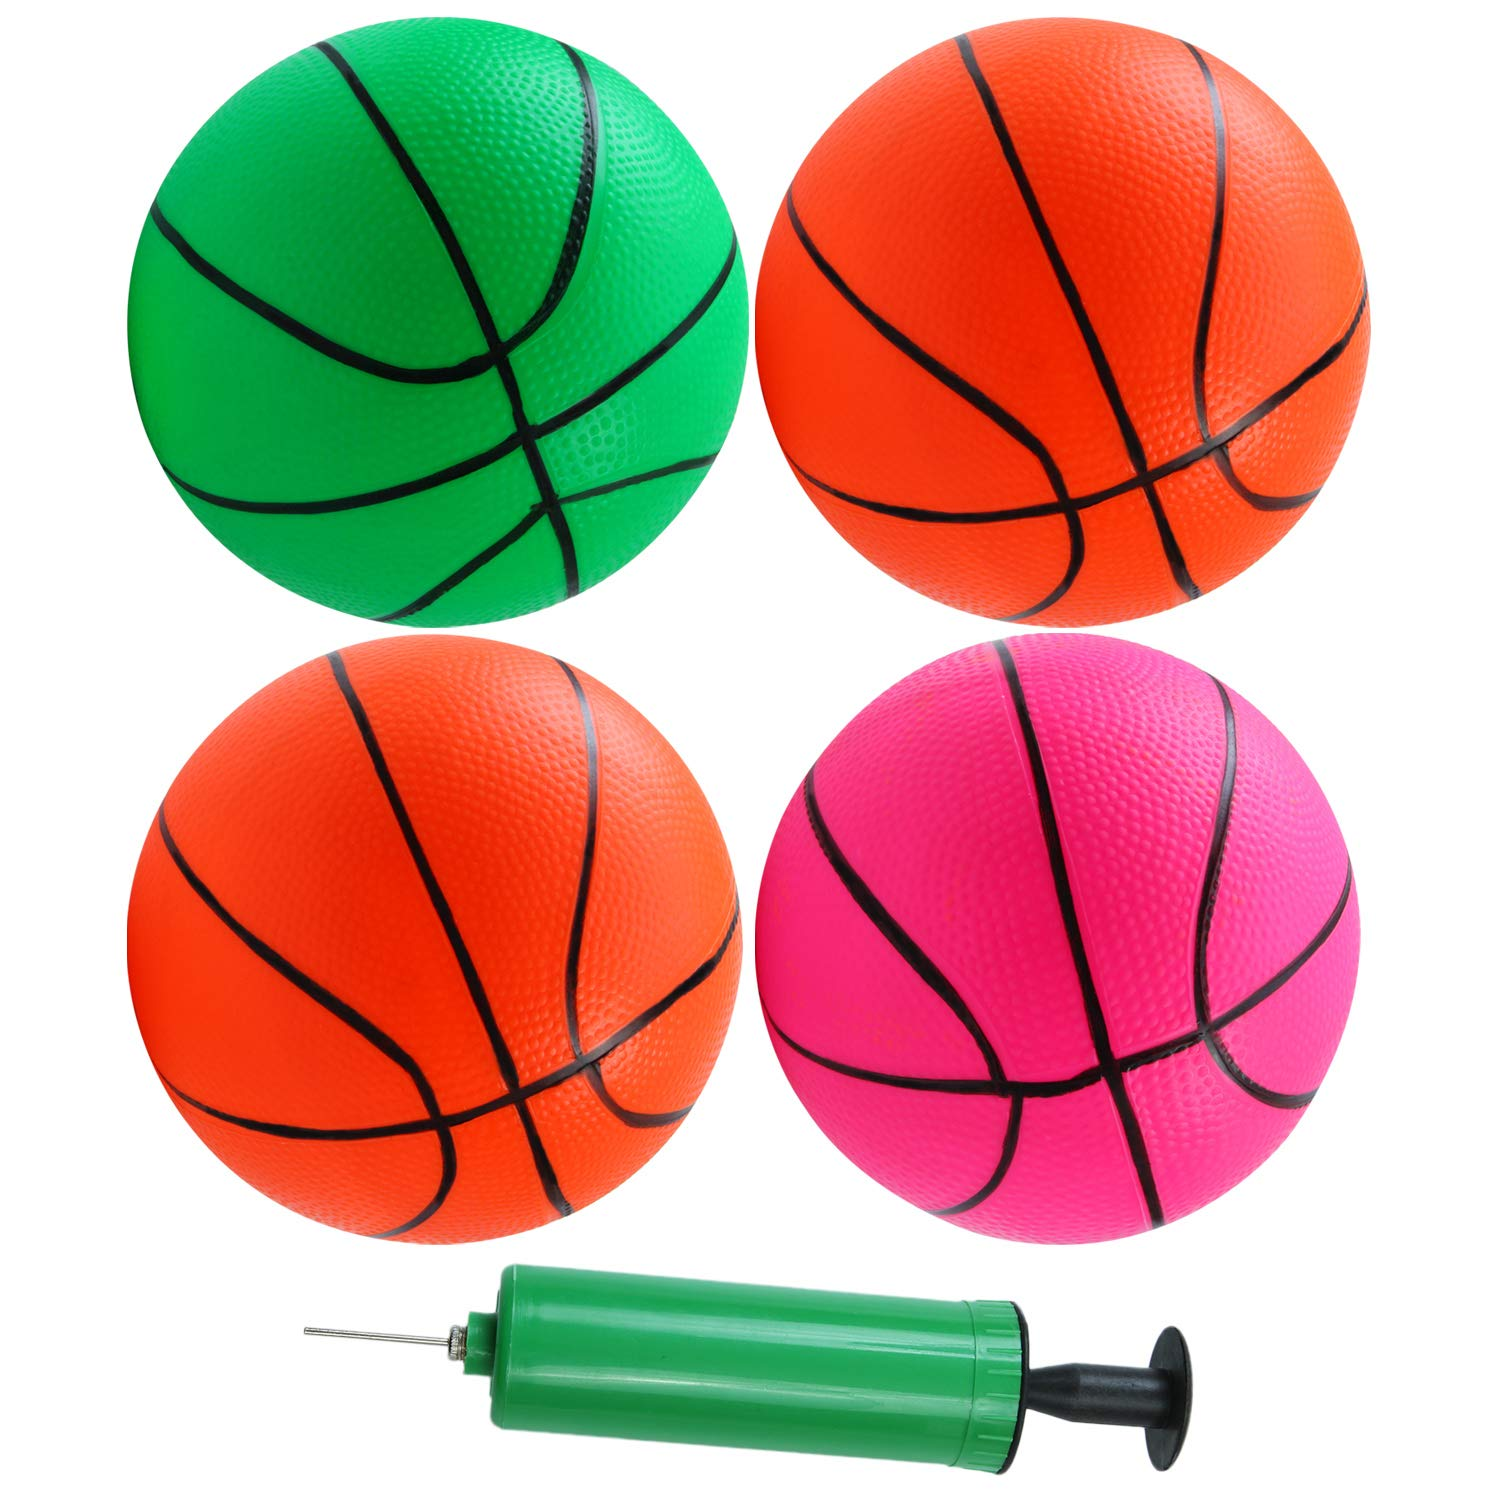 5 PCS with 1 Air Pump Teenager Basketballs BESTTY 6 Inches Colorful Toddler Kids Replacement Mini Toy Basketball Rubber Baketball for Kids